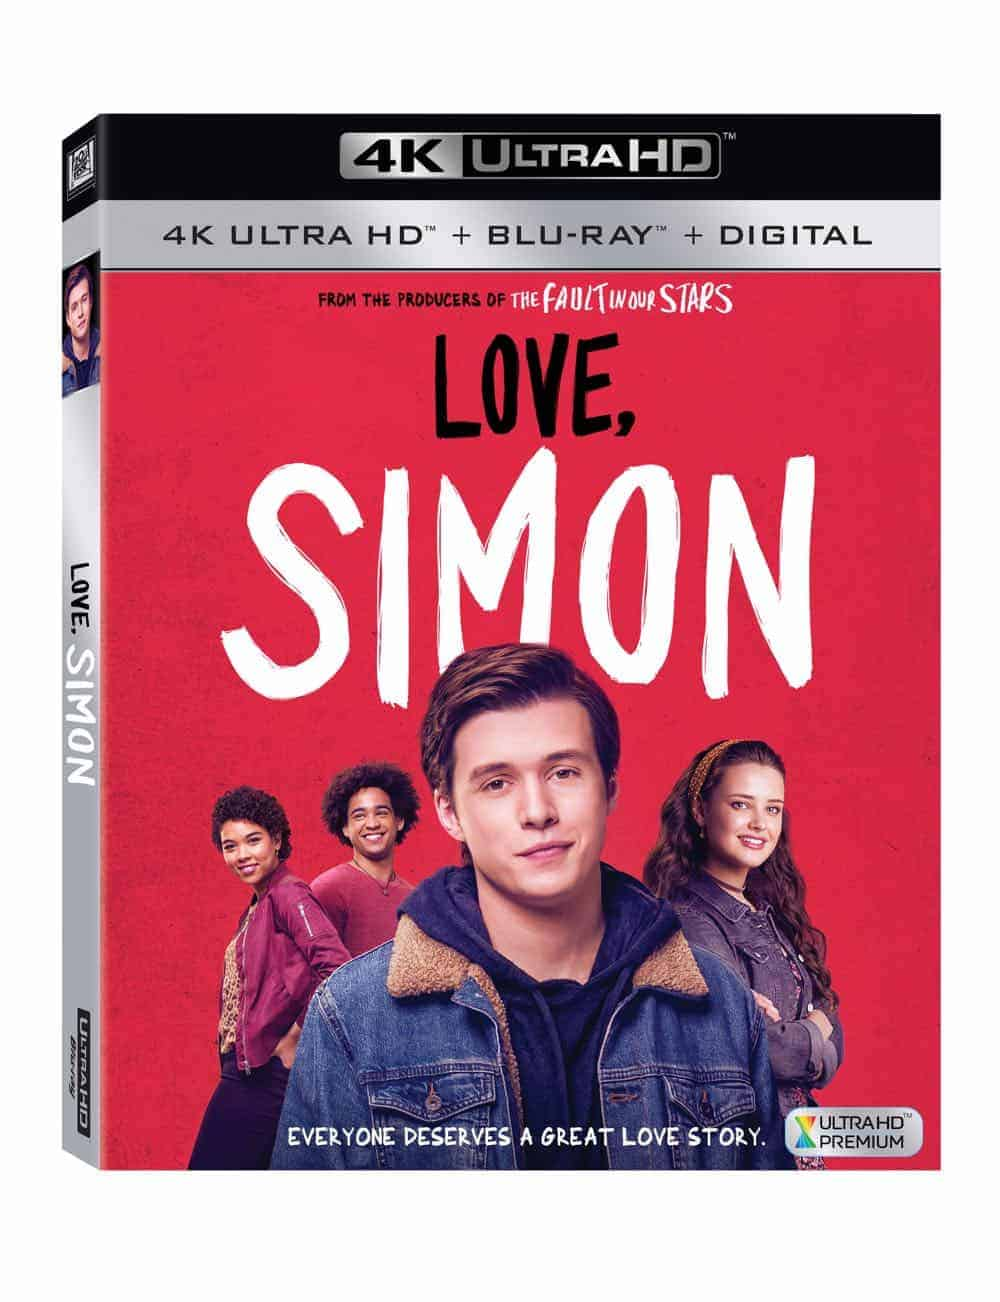 Love-Simon-4K-UHD-Box-Art